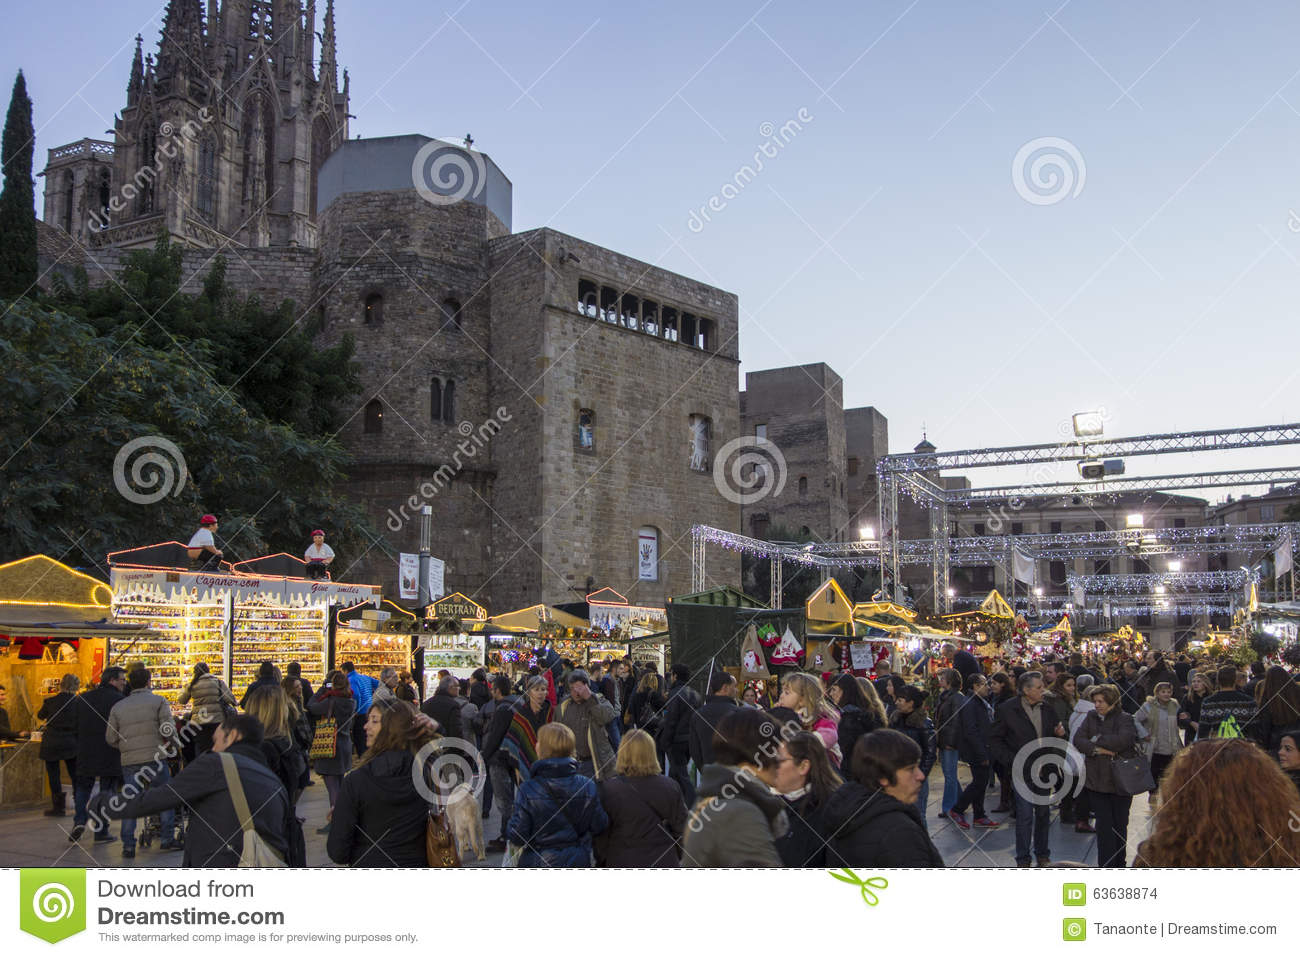 Barcelona, Spain - November 28, 2015: Stands with Christmas gifts in Barcelona, Spain. Fira de Santa Llucia - Christmas market